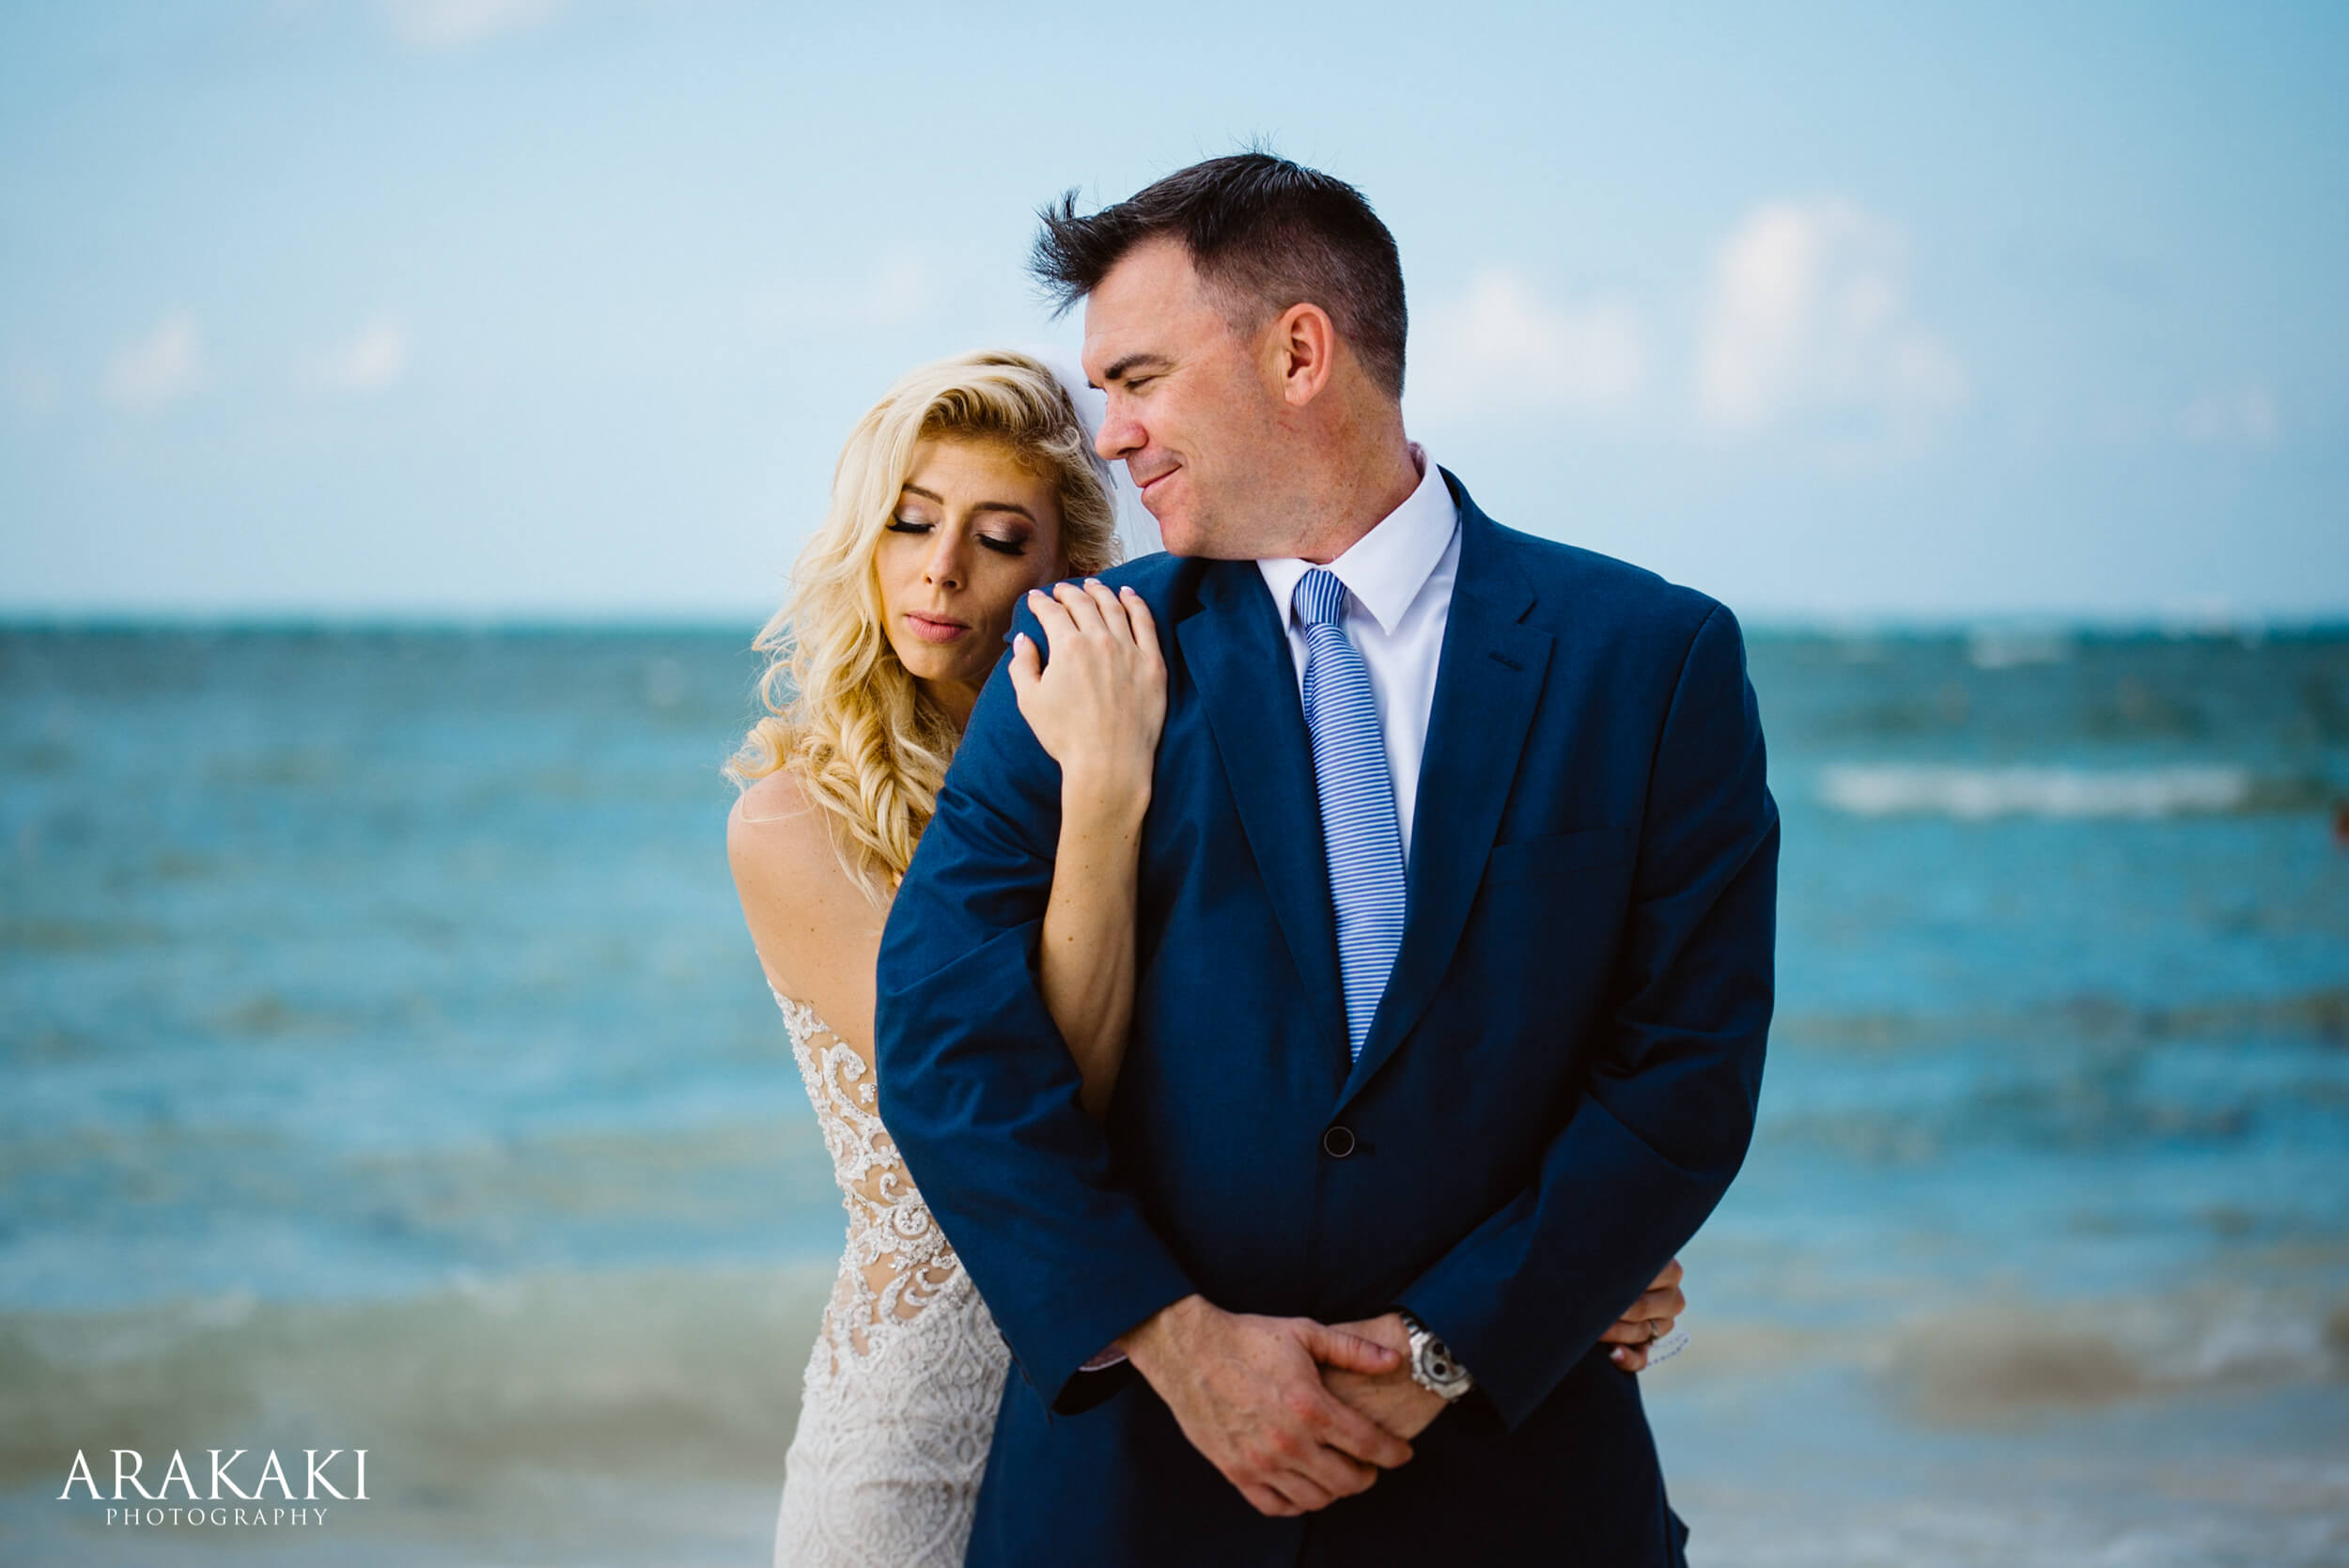 cancun-best-protographer Your Wedding in Cancun and Riviera Maya